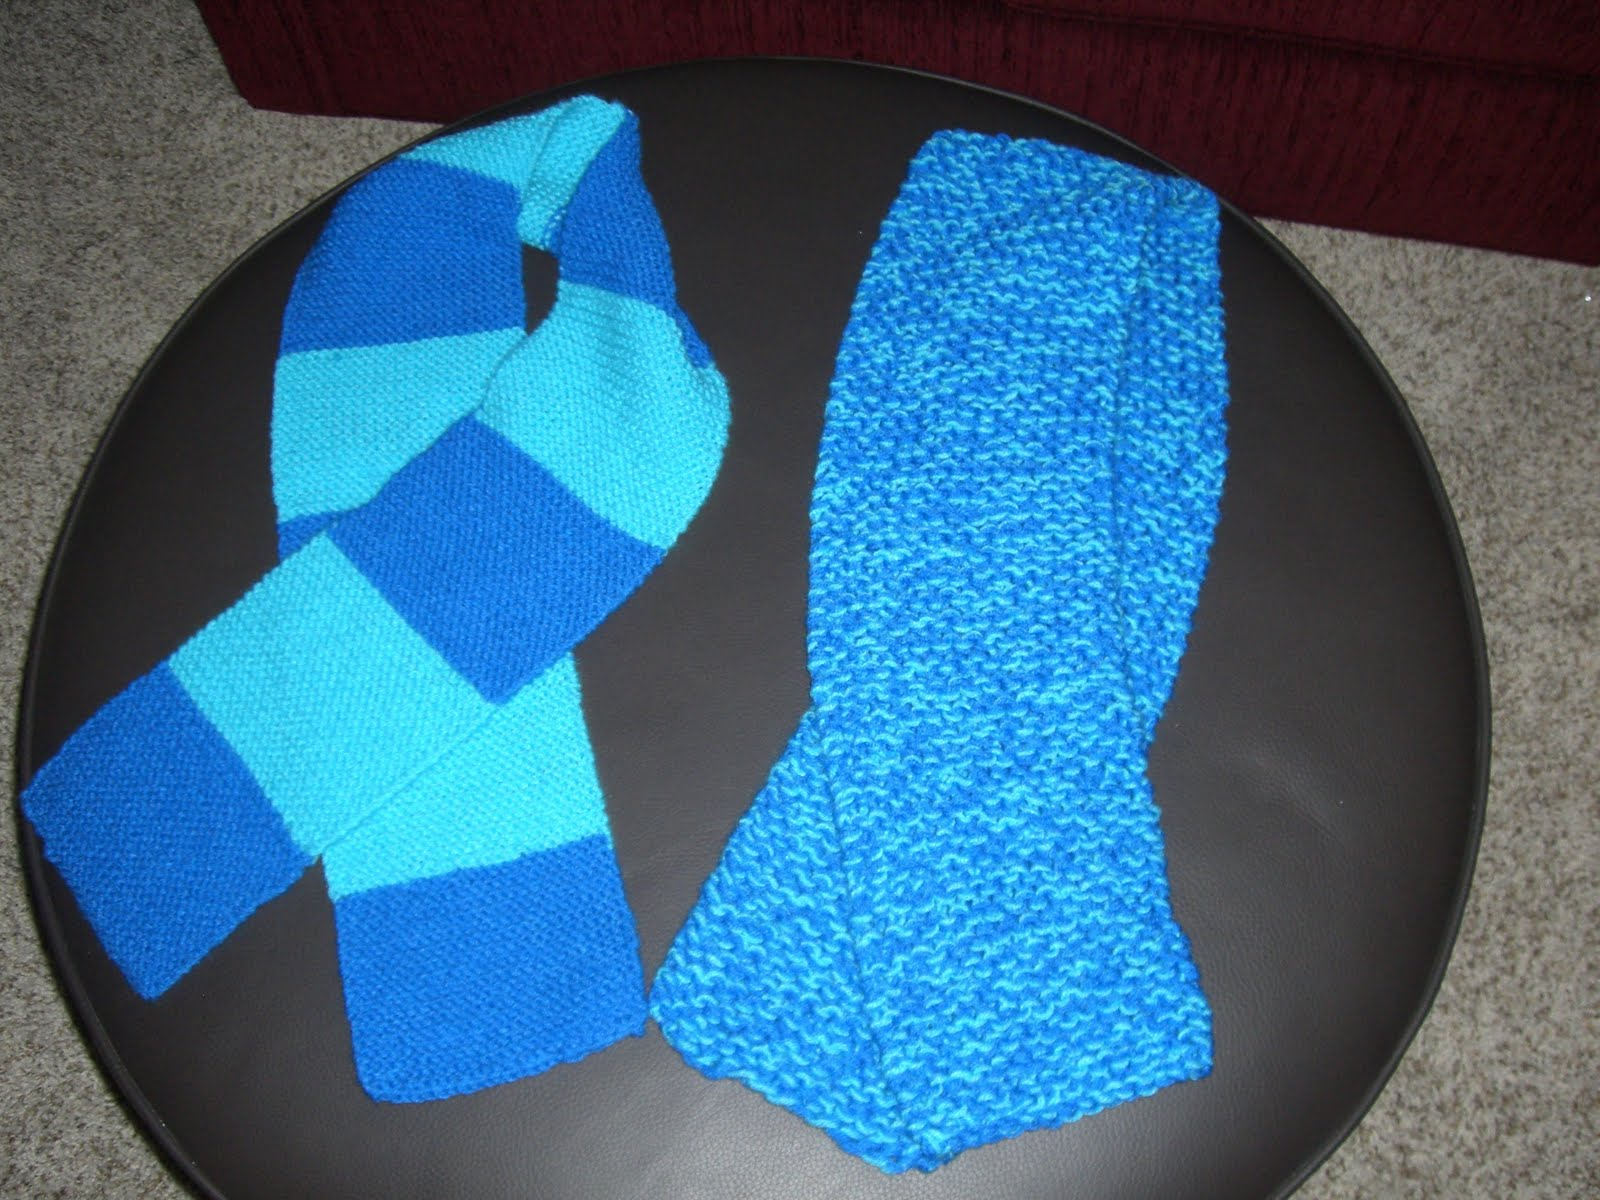 Lisa's Loft: Scarves for Special Olympics